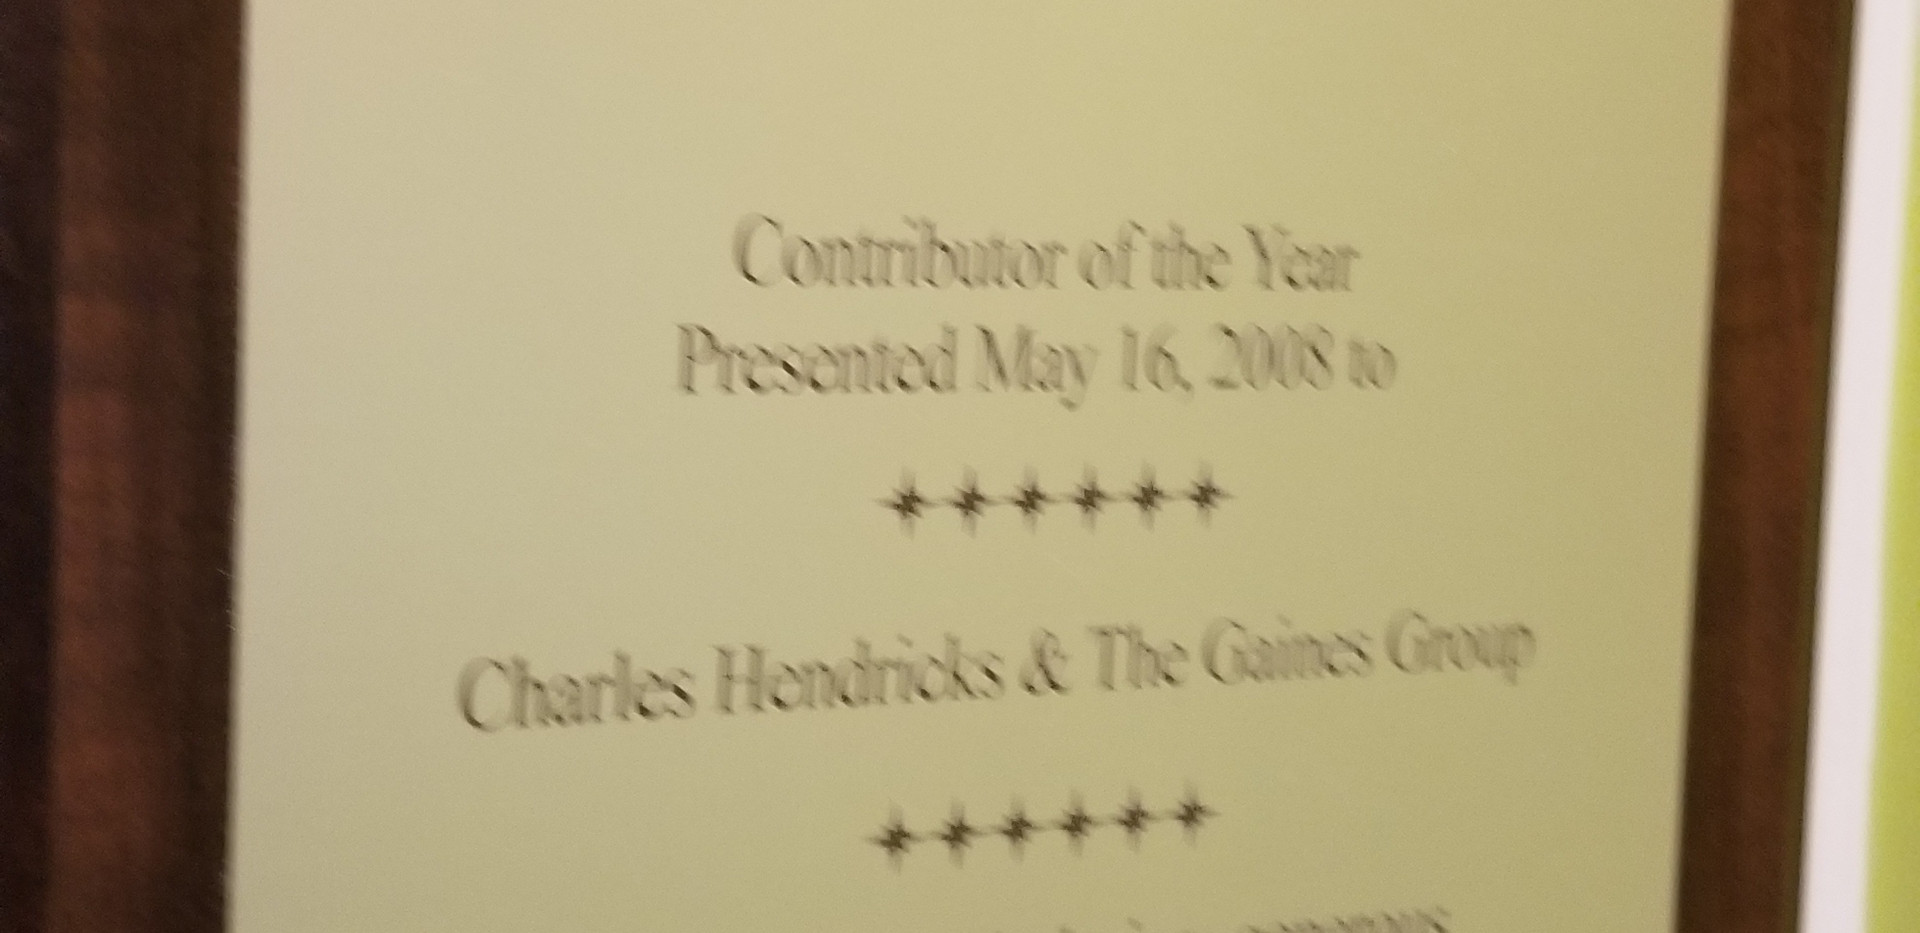 CATEC Foundation Contributor of the Year 2008